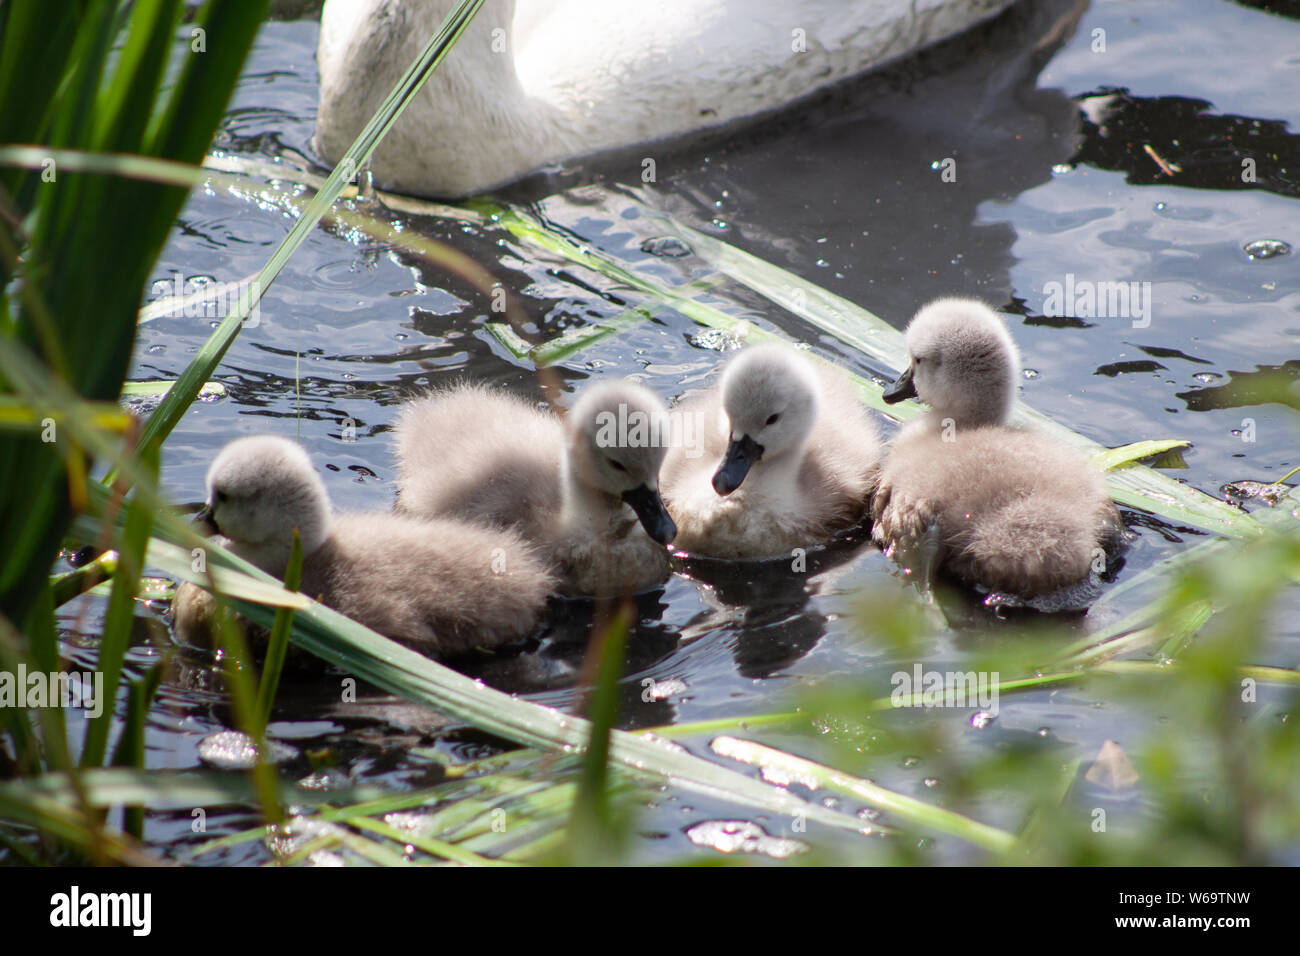 SWANS WITH SYGNETS Stock Photo